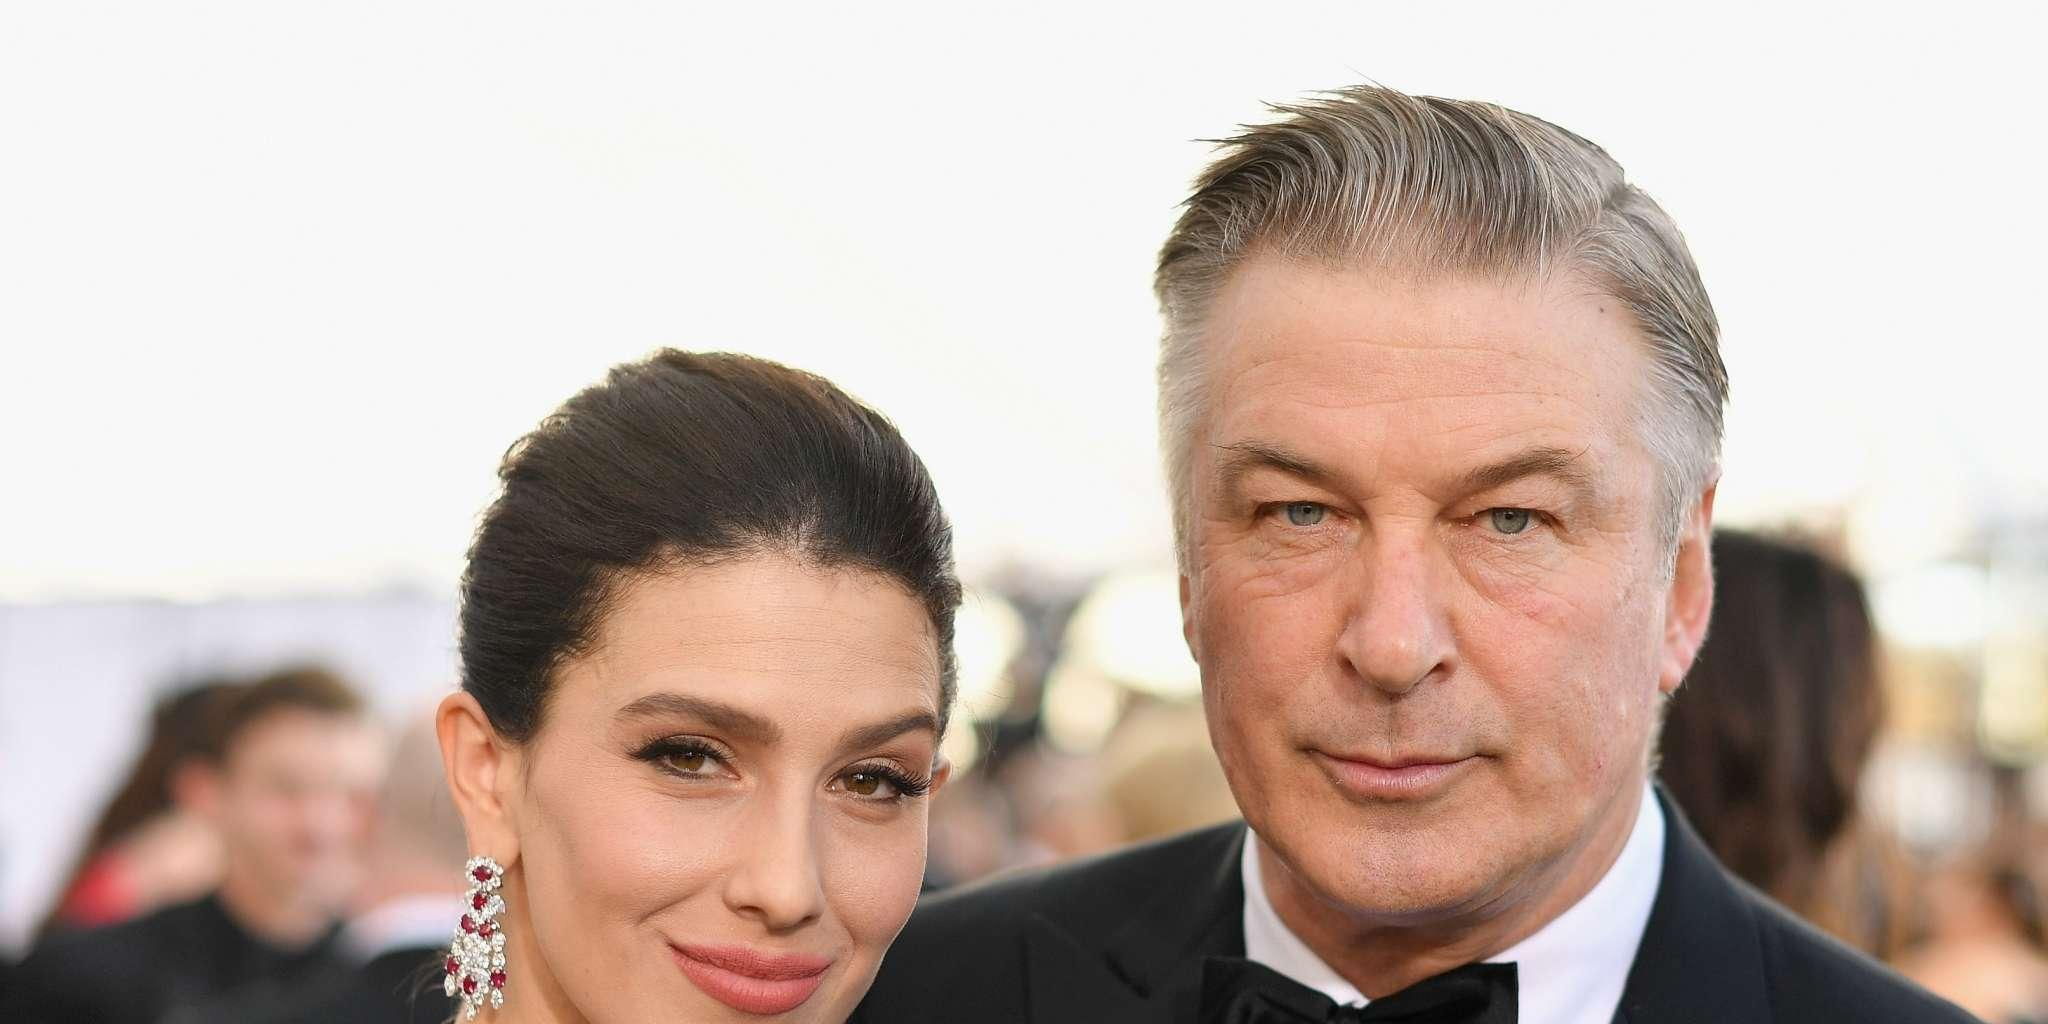 Hilaria And Alec Baldwin's Baby Experiences Terrifying Health Scare!